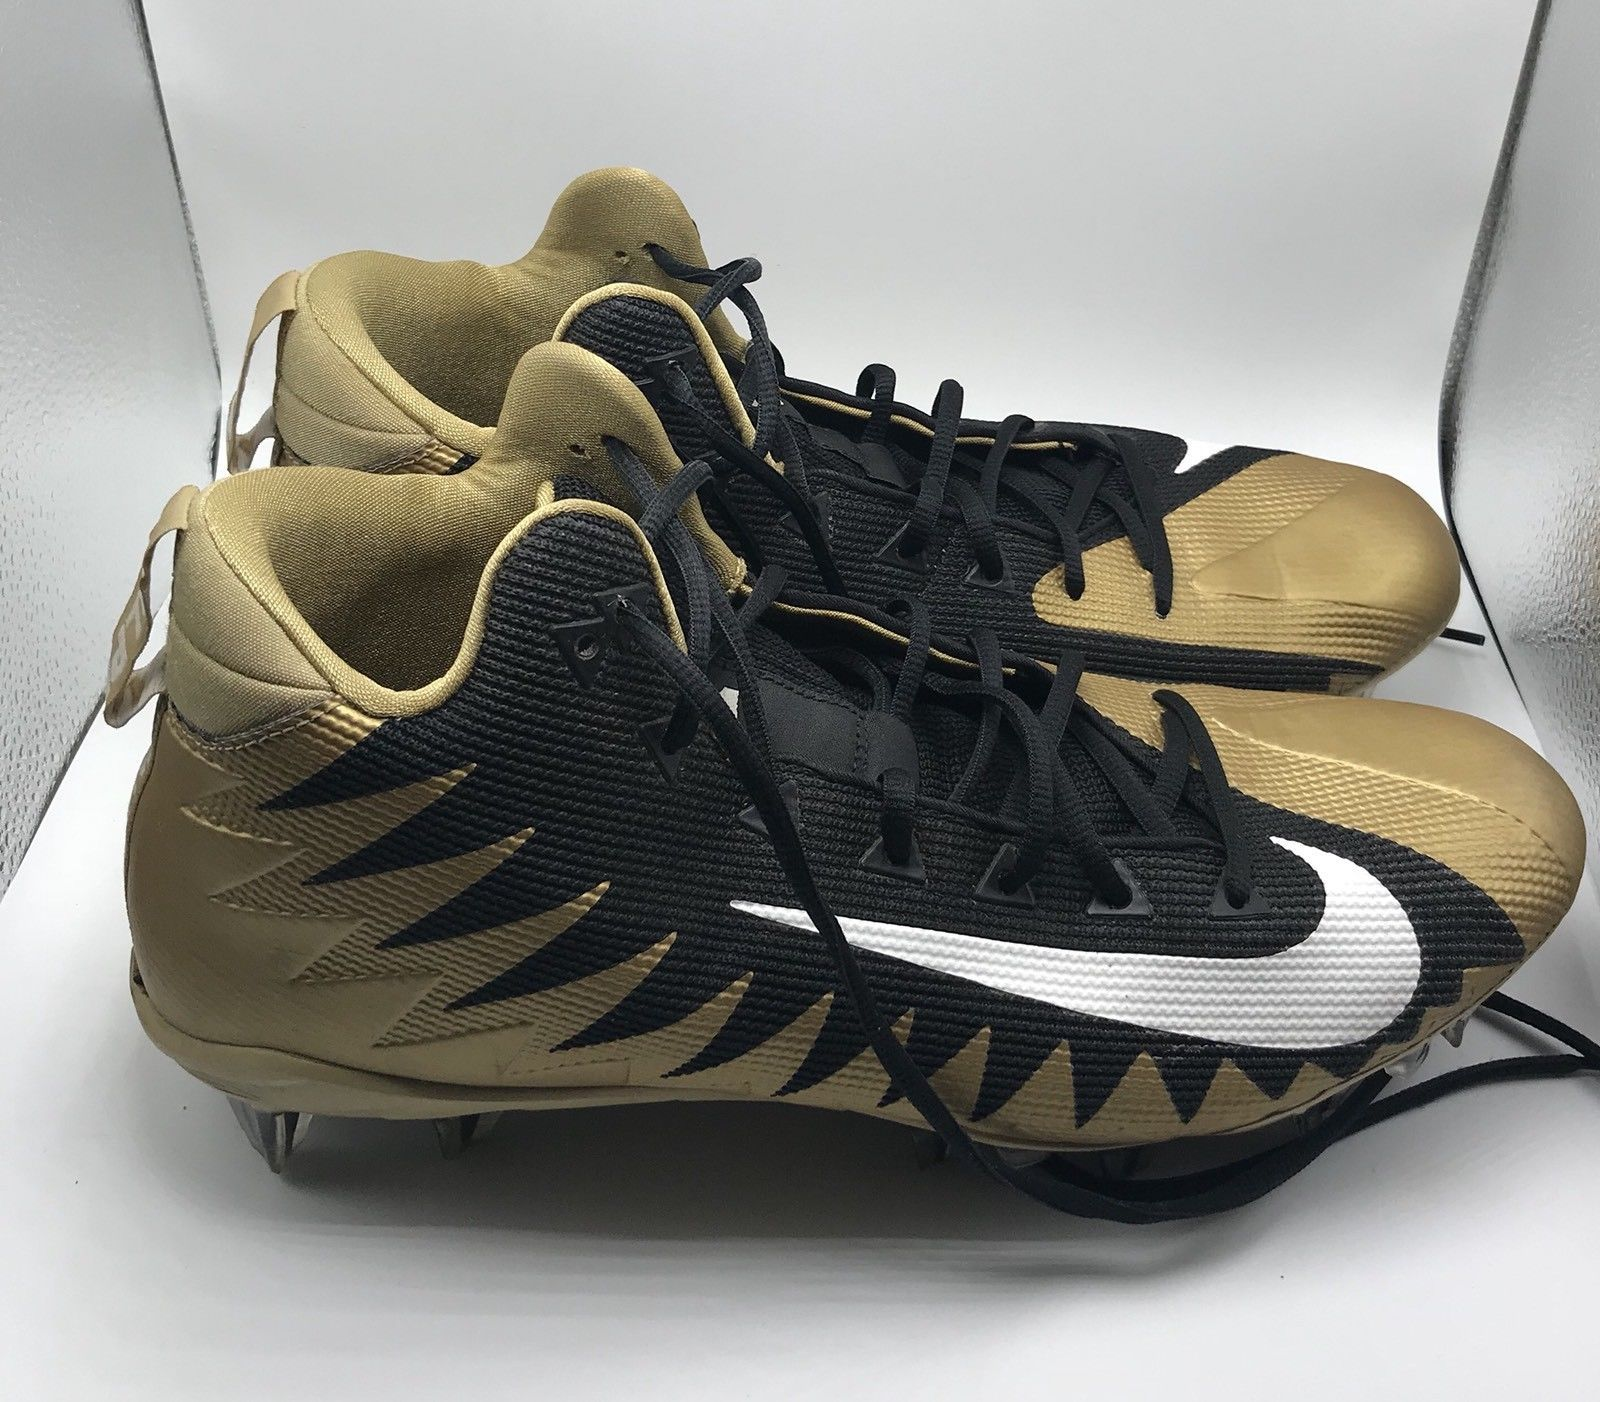 55bb41fbf Men s Cleats Nike Alpha Menace Black Gold and 50 similar items. 57